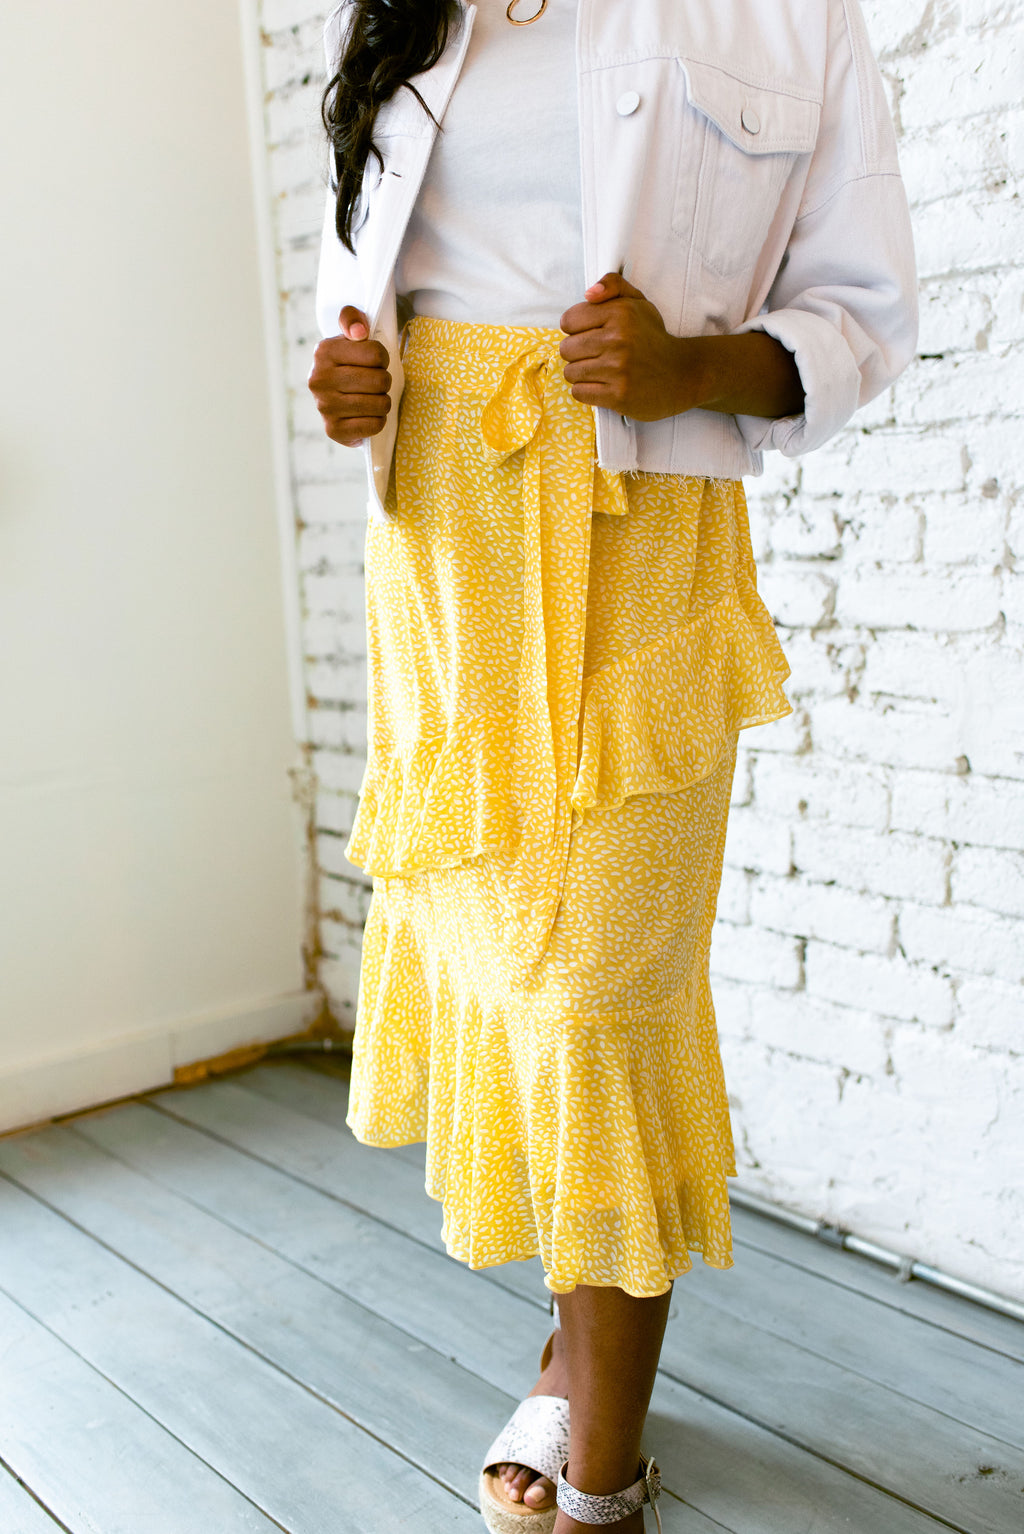 bloom skirt // yellow - poppy & rose clothing